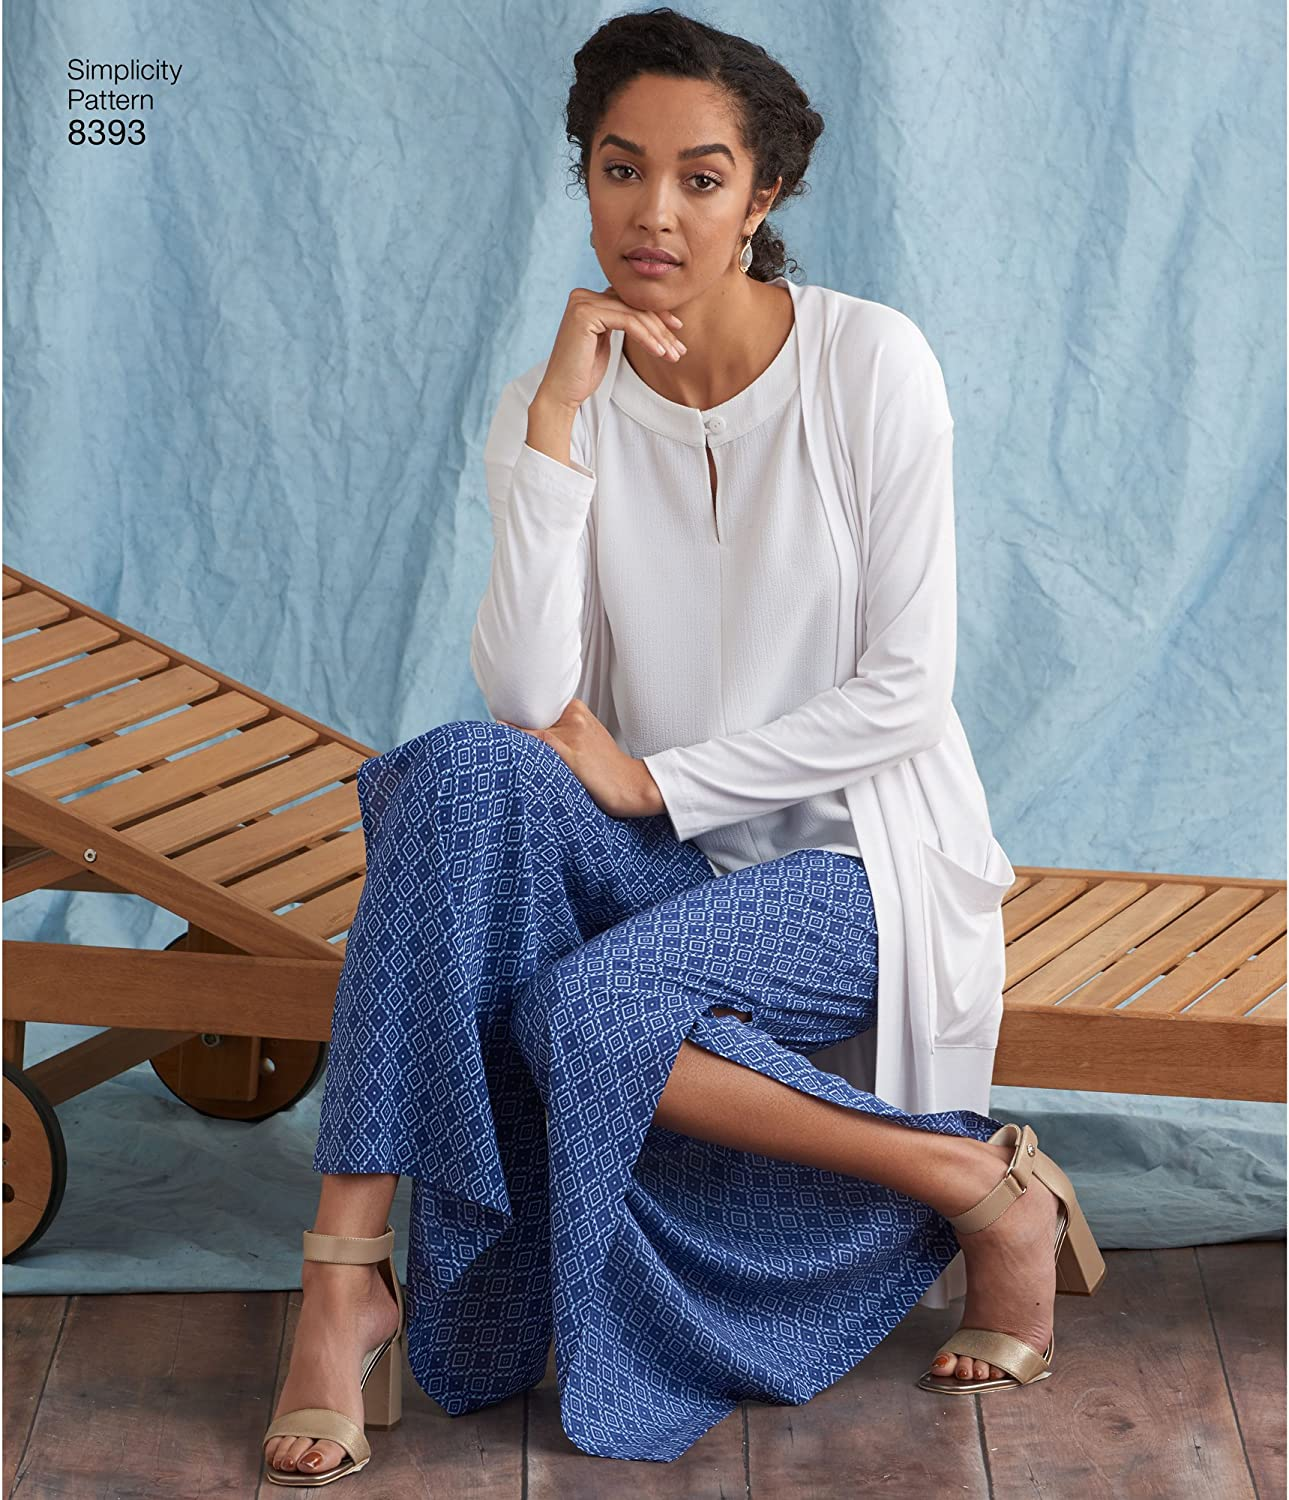 Tunic or Top /& Knit Cardigan Pattern 10-12-14-16-18 AA Simplicity Creative Patterns US8393AA Misses /& Plus Size Pants